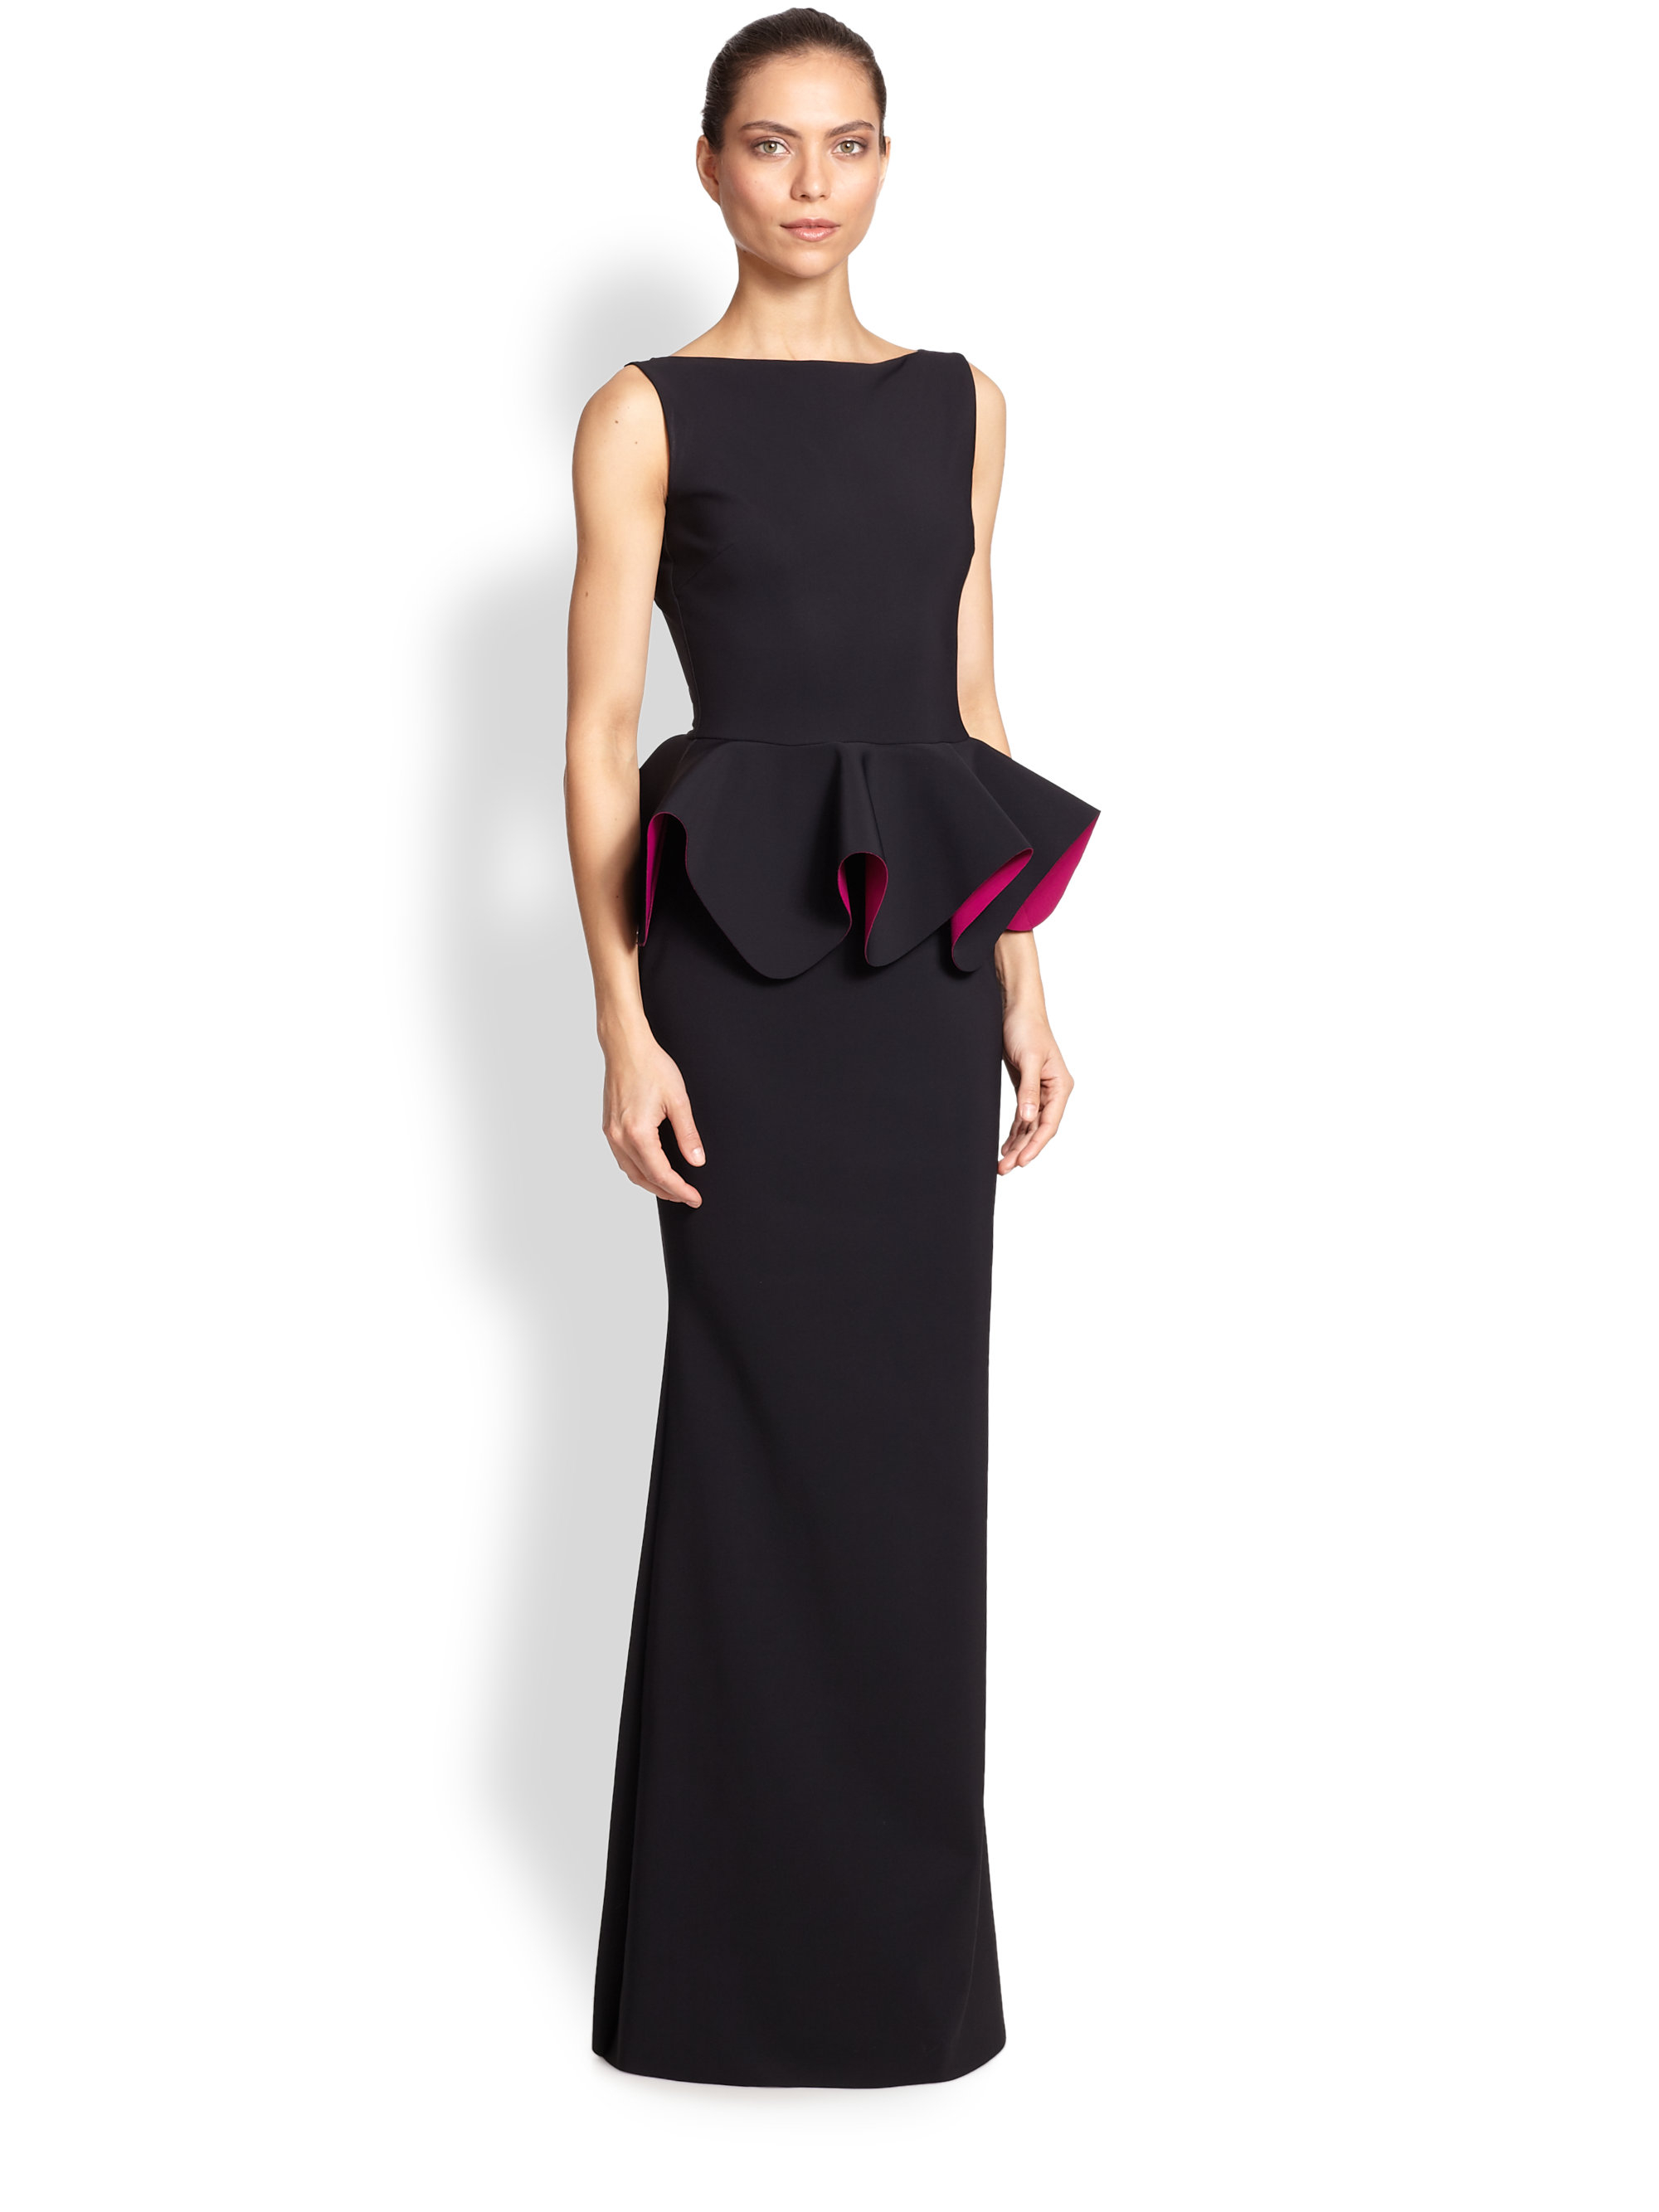 Chiara Boni The Most Popular Dress In America: La Petite Robe Di Chiara Boni Stretch Jersey Peplum Gown